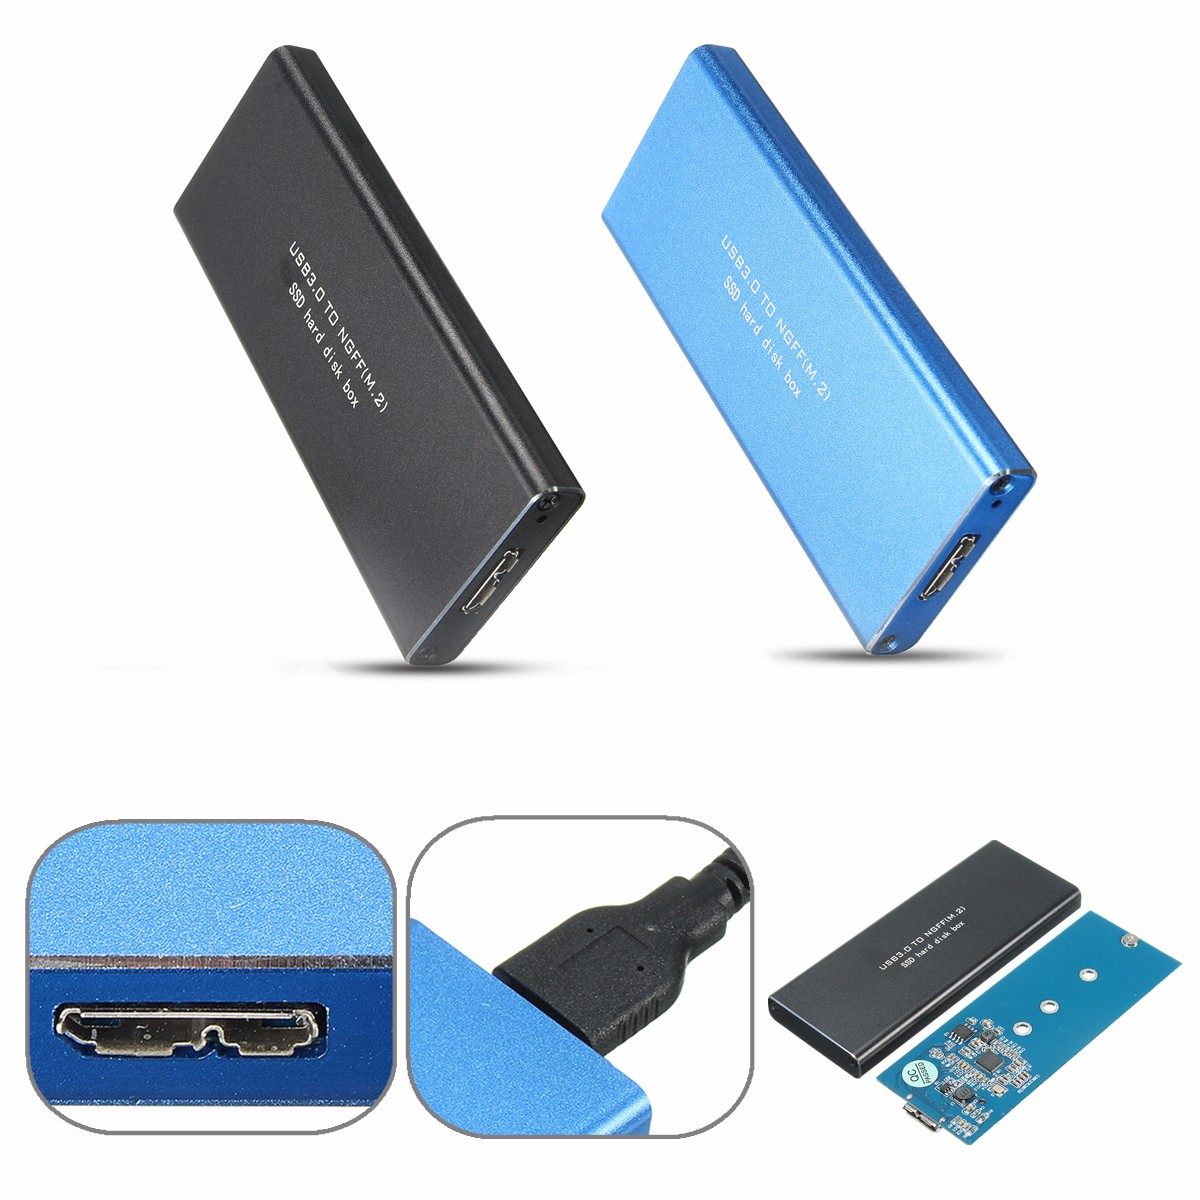 USB 3.0 to NGFF M.2 B Key SSD Solid State Drive Adapter Card External Hard Drive Enclosure Case